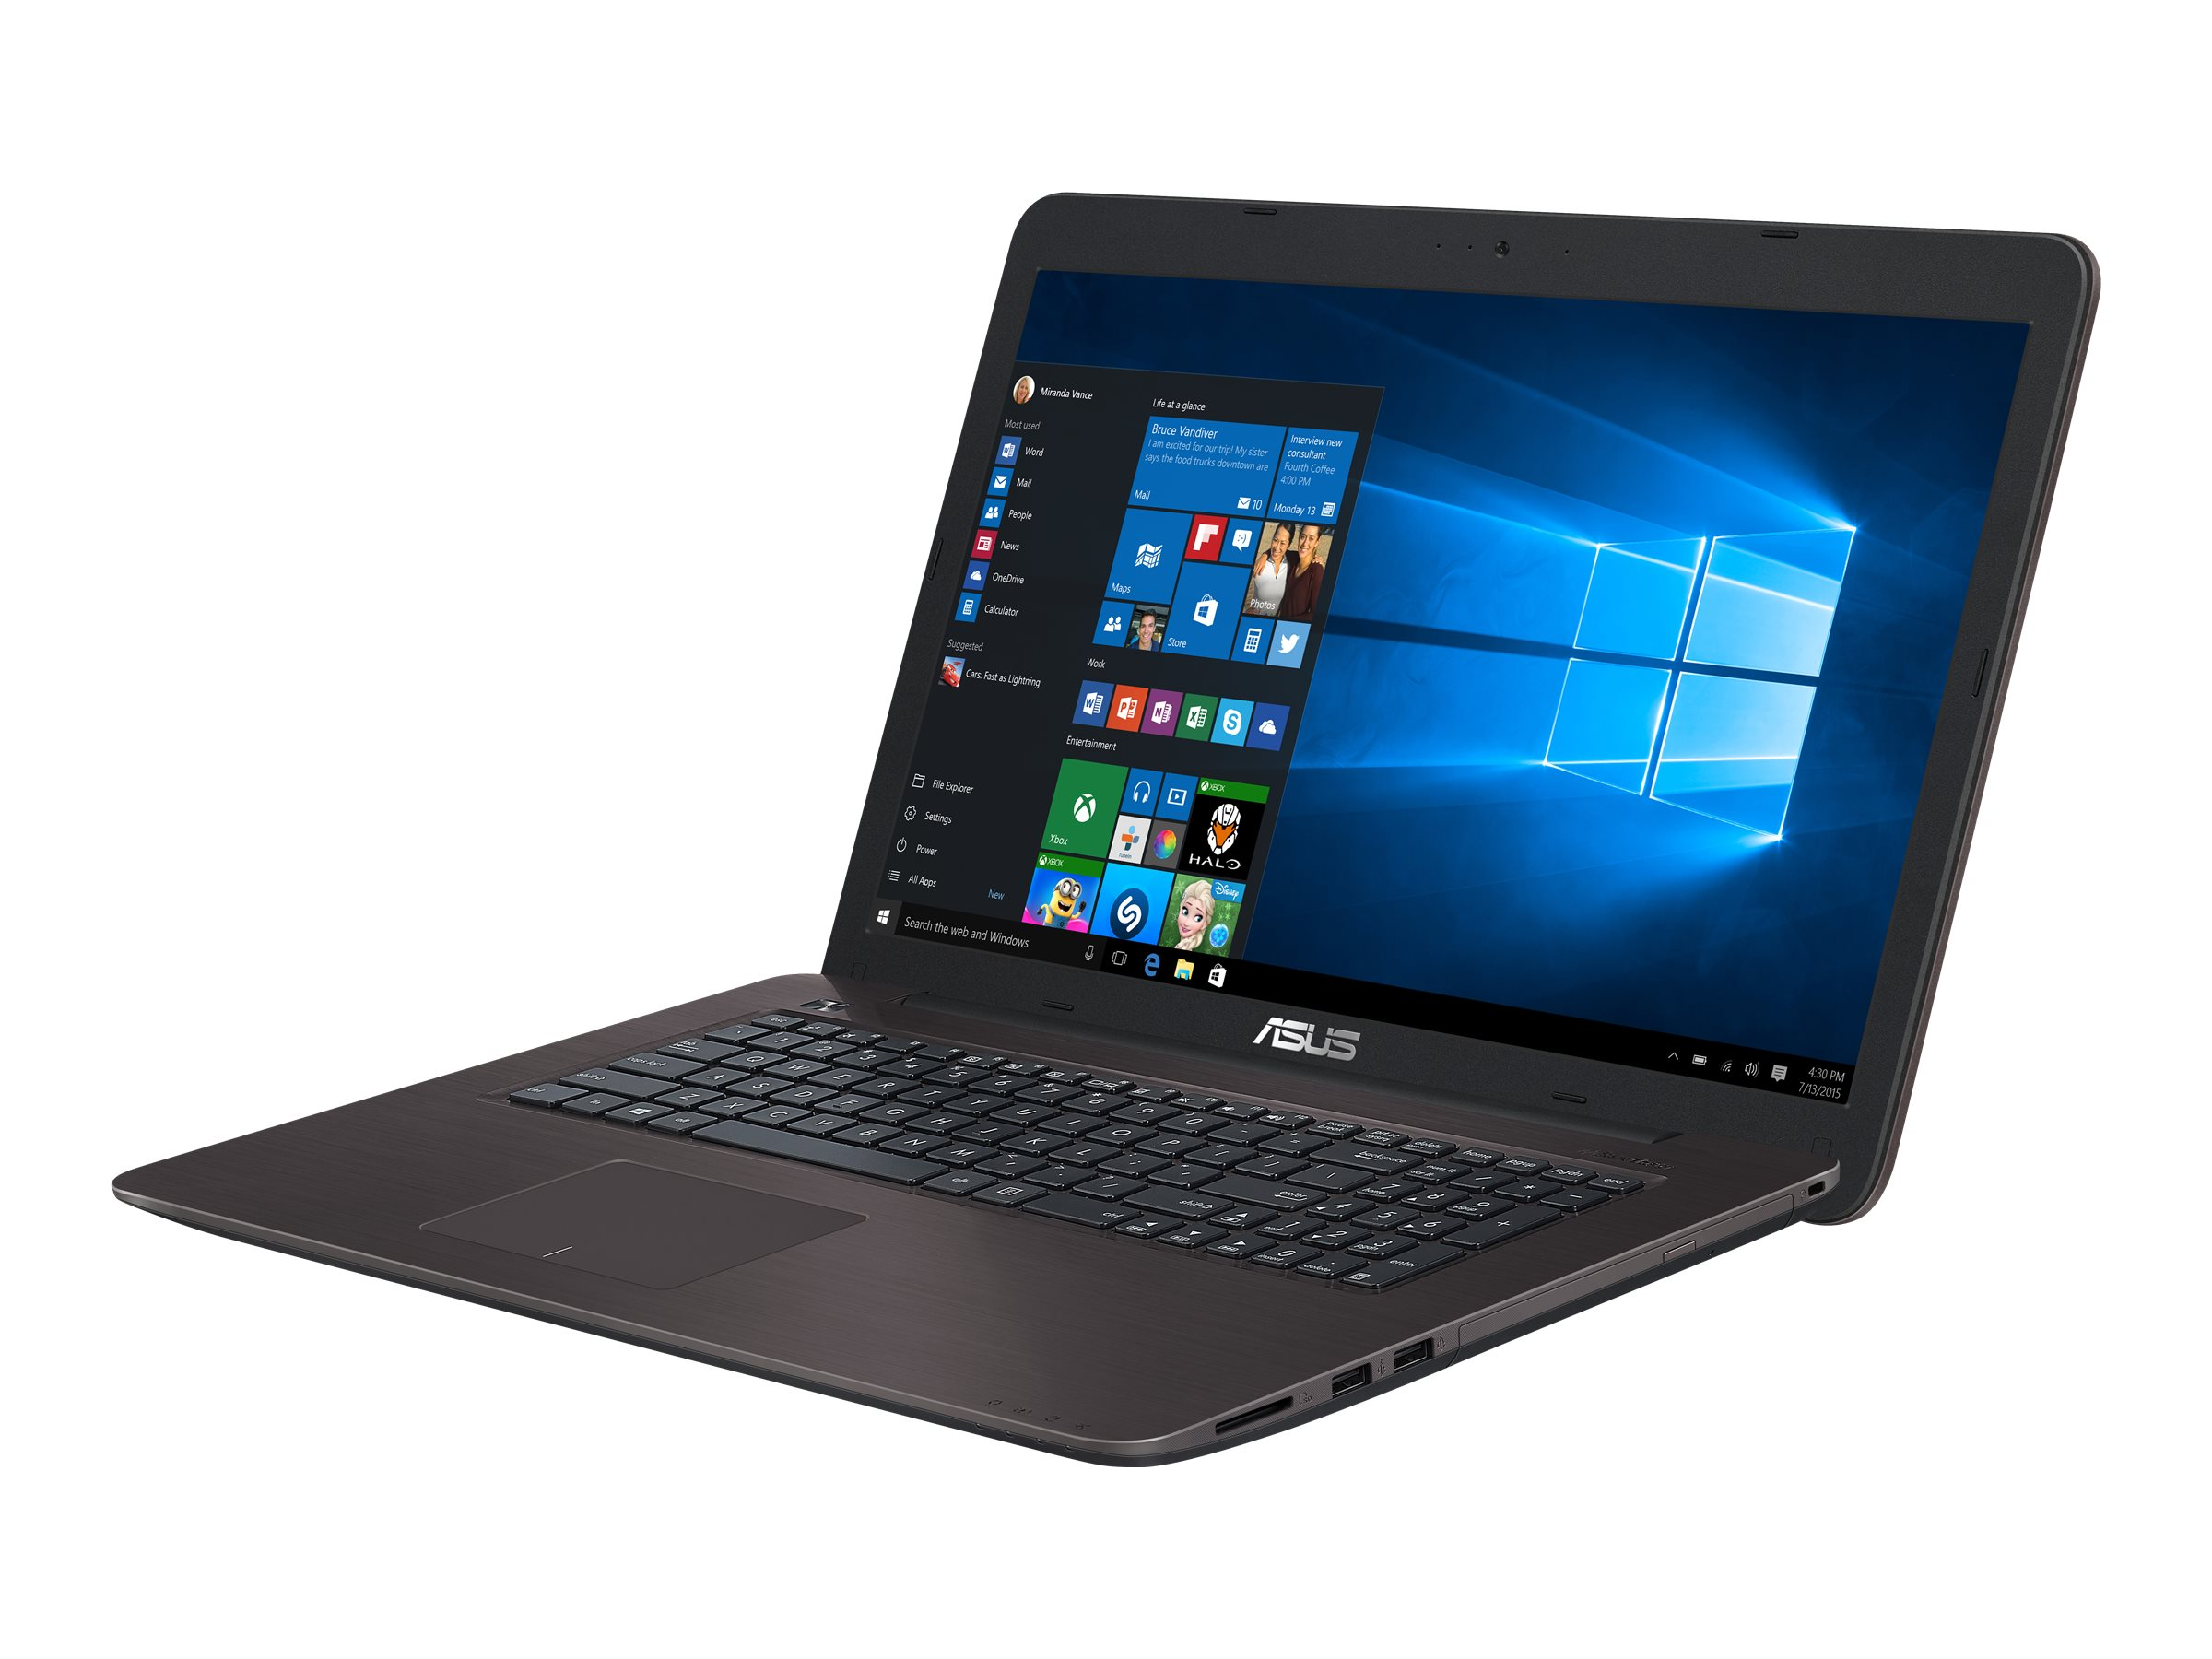 ASUS X756UQ TY193T - Core i5 7200U / 2.5 GHz - Win 10 Home 64-Bit - 8 GB RAM - 1 TB HDD - DVD SuperMulti